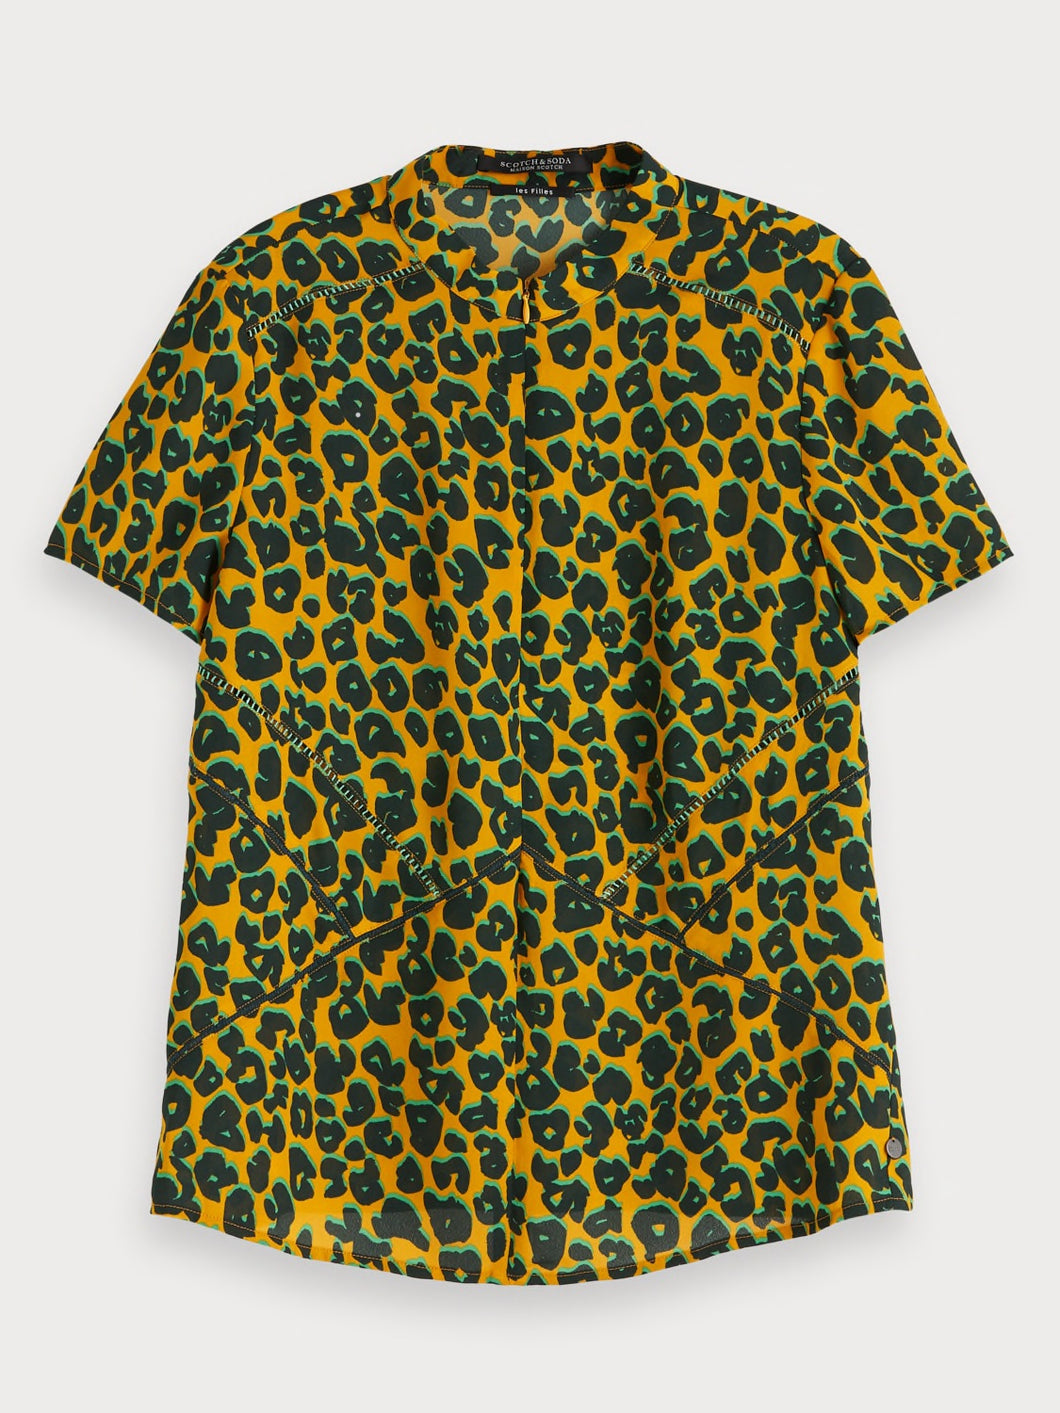 Maison Scotch animal print top in smooth crepe with hidden zip at the neckline.